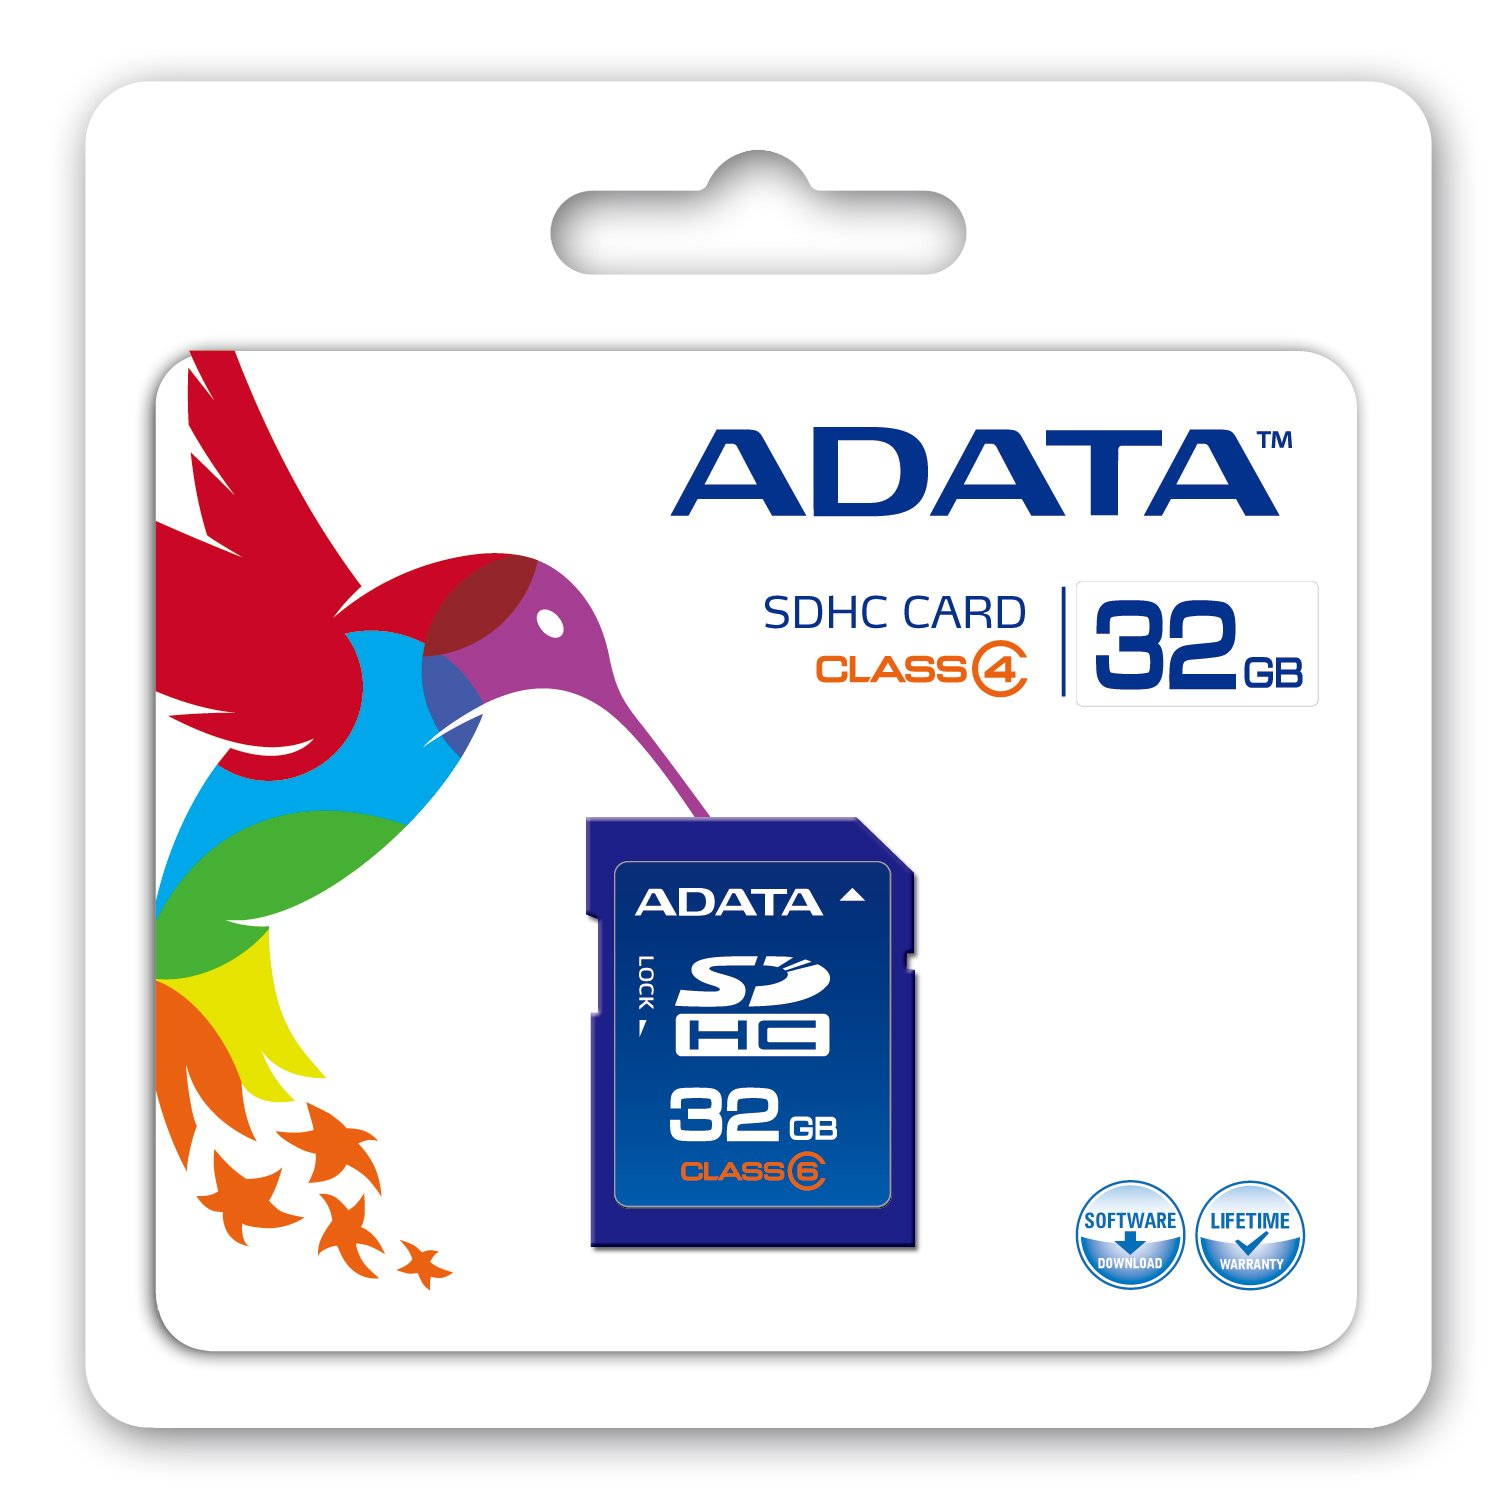 Adata 8gb Sdhc Class 4 Memory Card Asdh8gcl4 R Micro Sd Hc V Gen Turbo Series 16gb 10 Free Adaptor Adapter Electronics